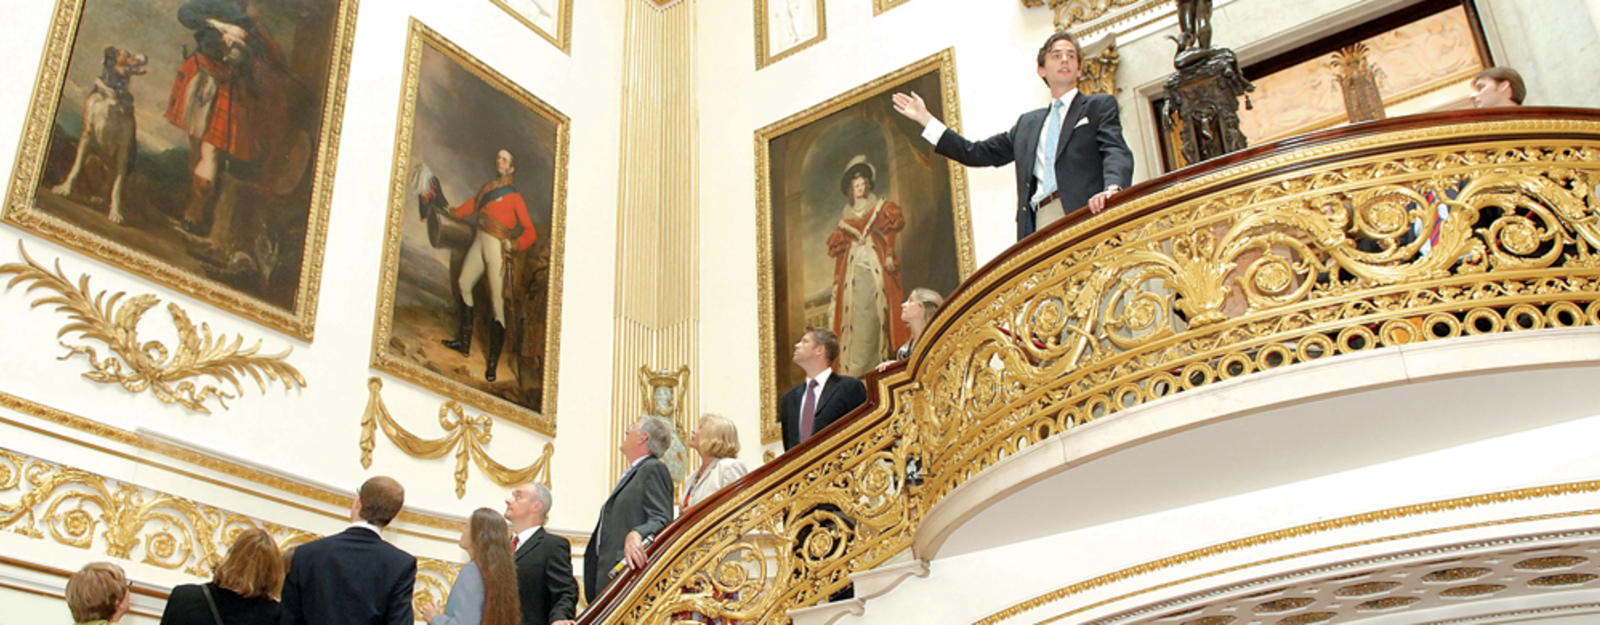 Enjoy an Exclusive Guided Tour through the State Rooms at Buckingham Palace